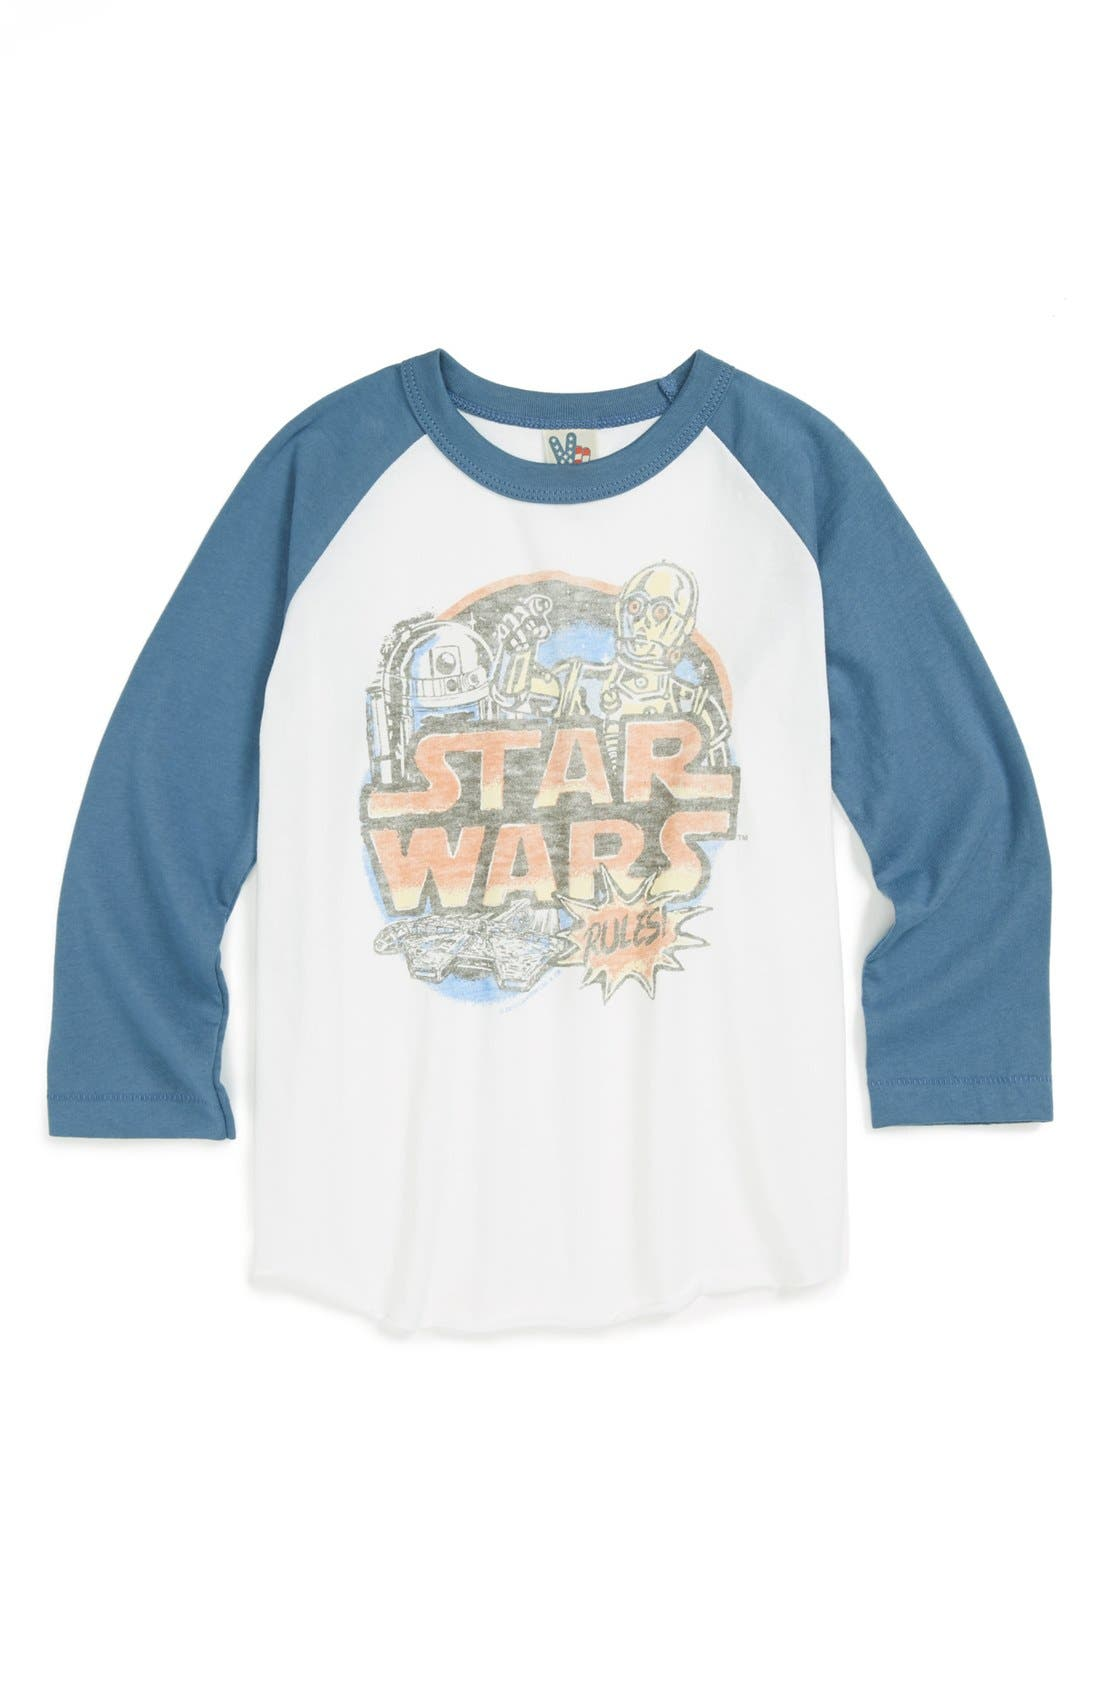 Alternate Image 1 Selected - Junk Food 'Star Wars™' Baseball T-Shirt (Toddler Boys)